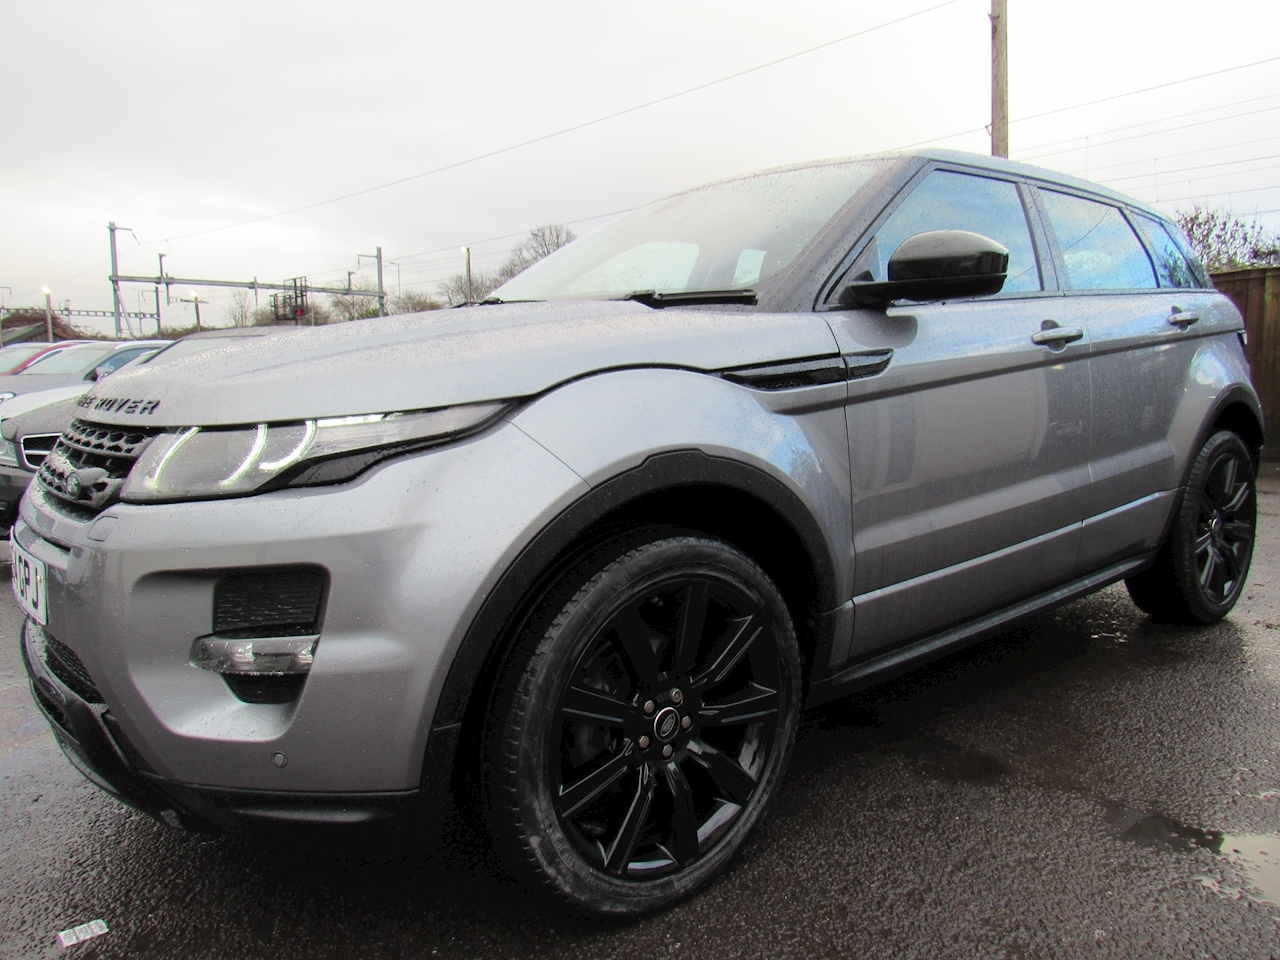 Land Rover 2.2 SD4 Dynamic SUV 5dr Diesel Automatic AWD (159 g/km, 190 bhp)